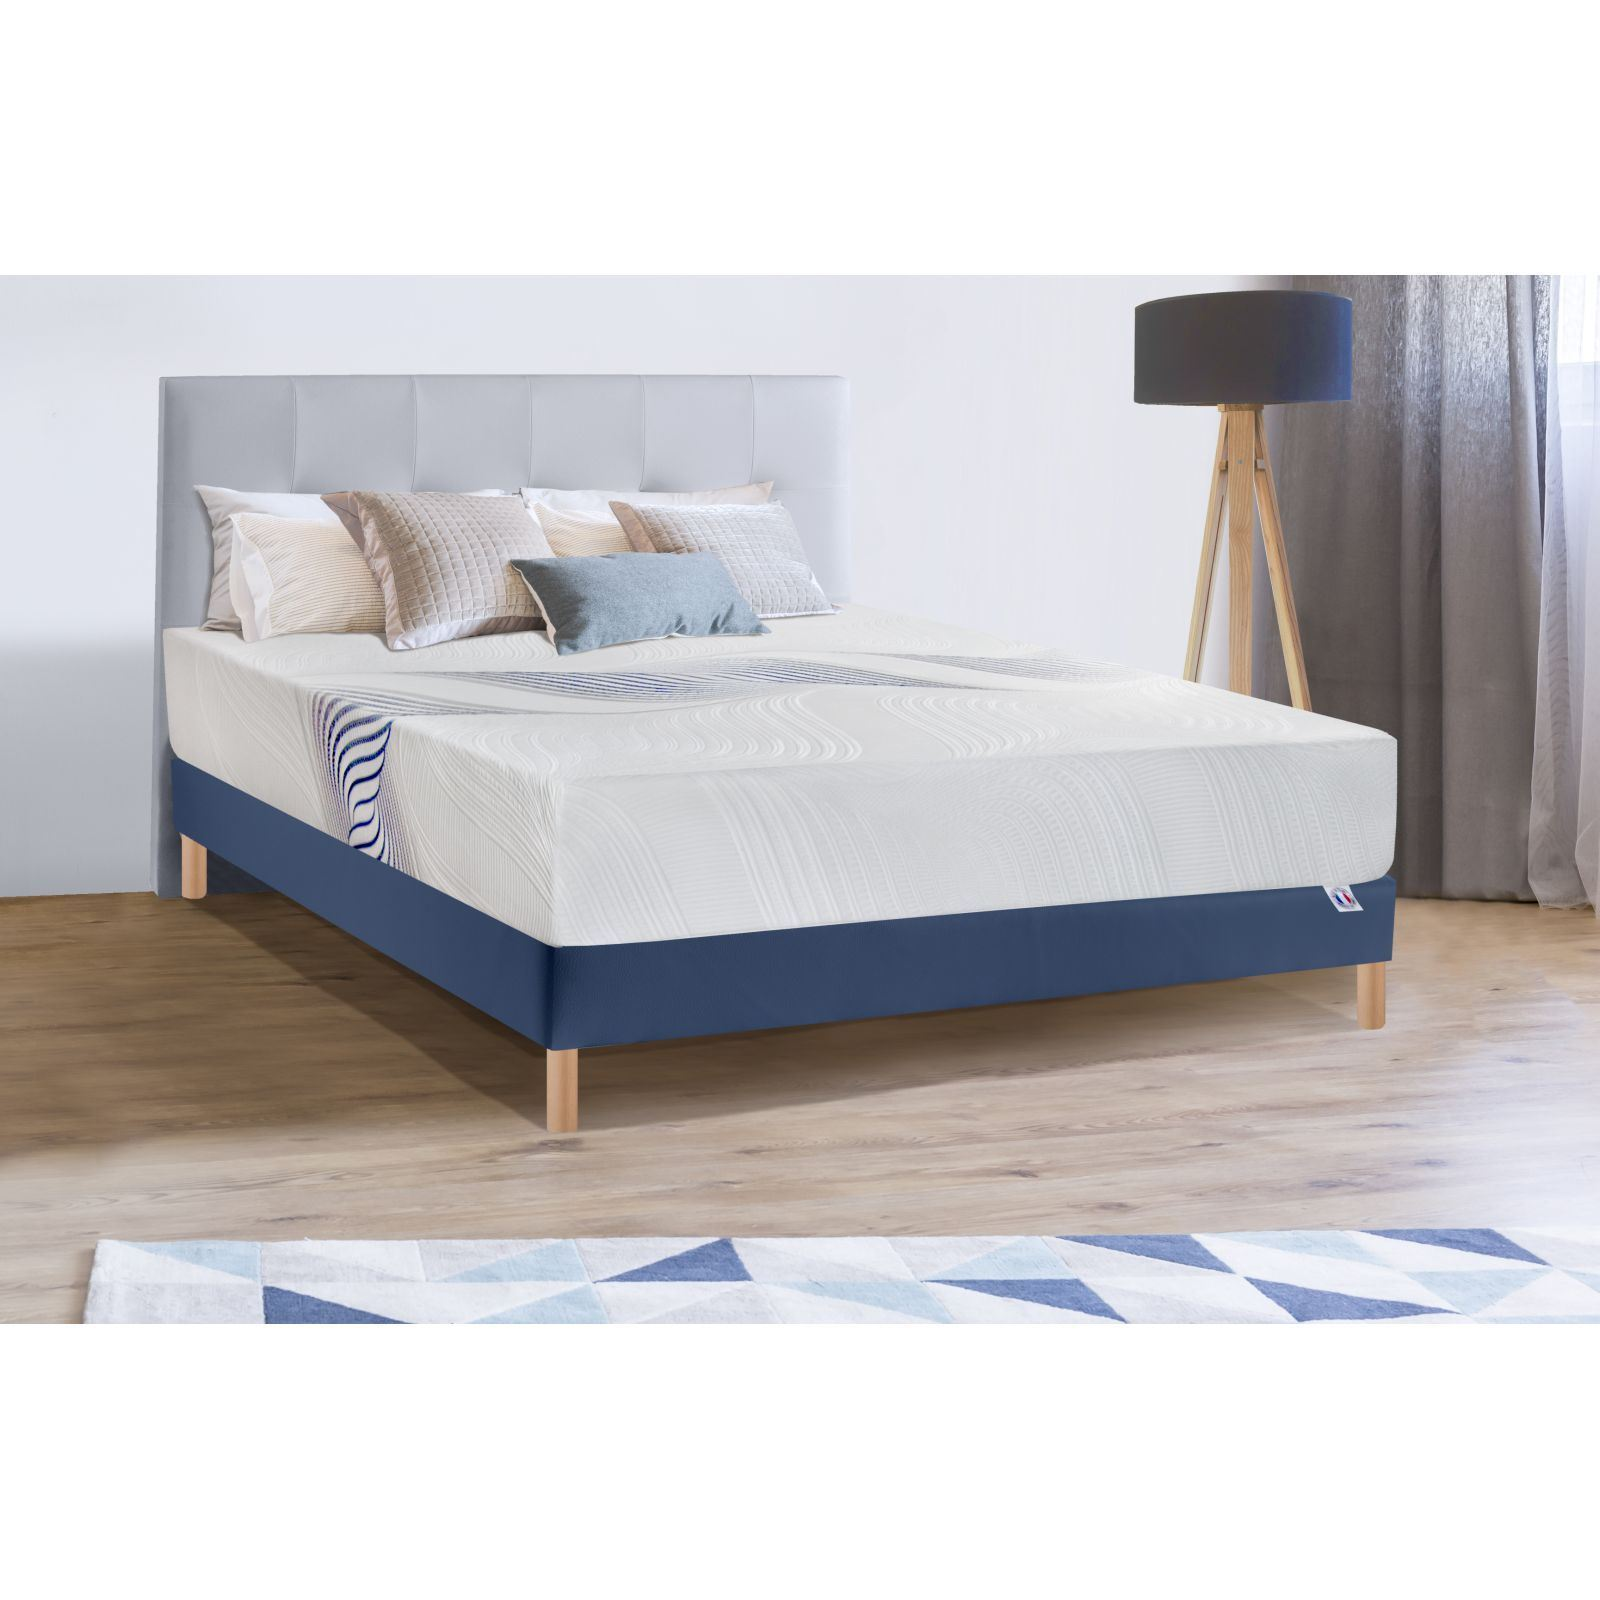 bellecour ouranos ensemble matelas sommier blanc brandalley. Black Bedroom Furniture Sets. Home Design Ideas